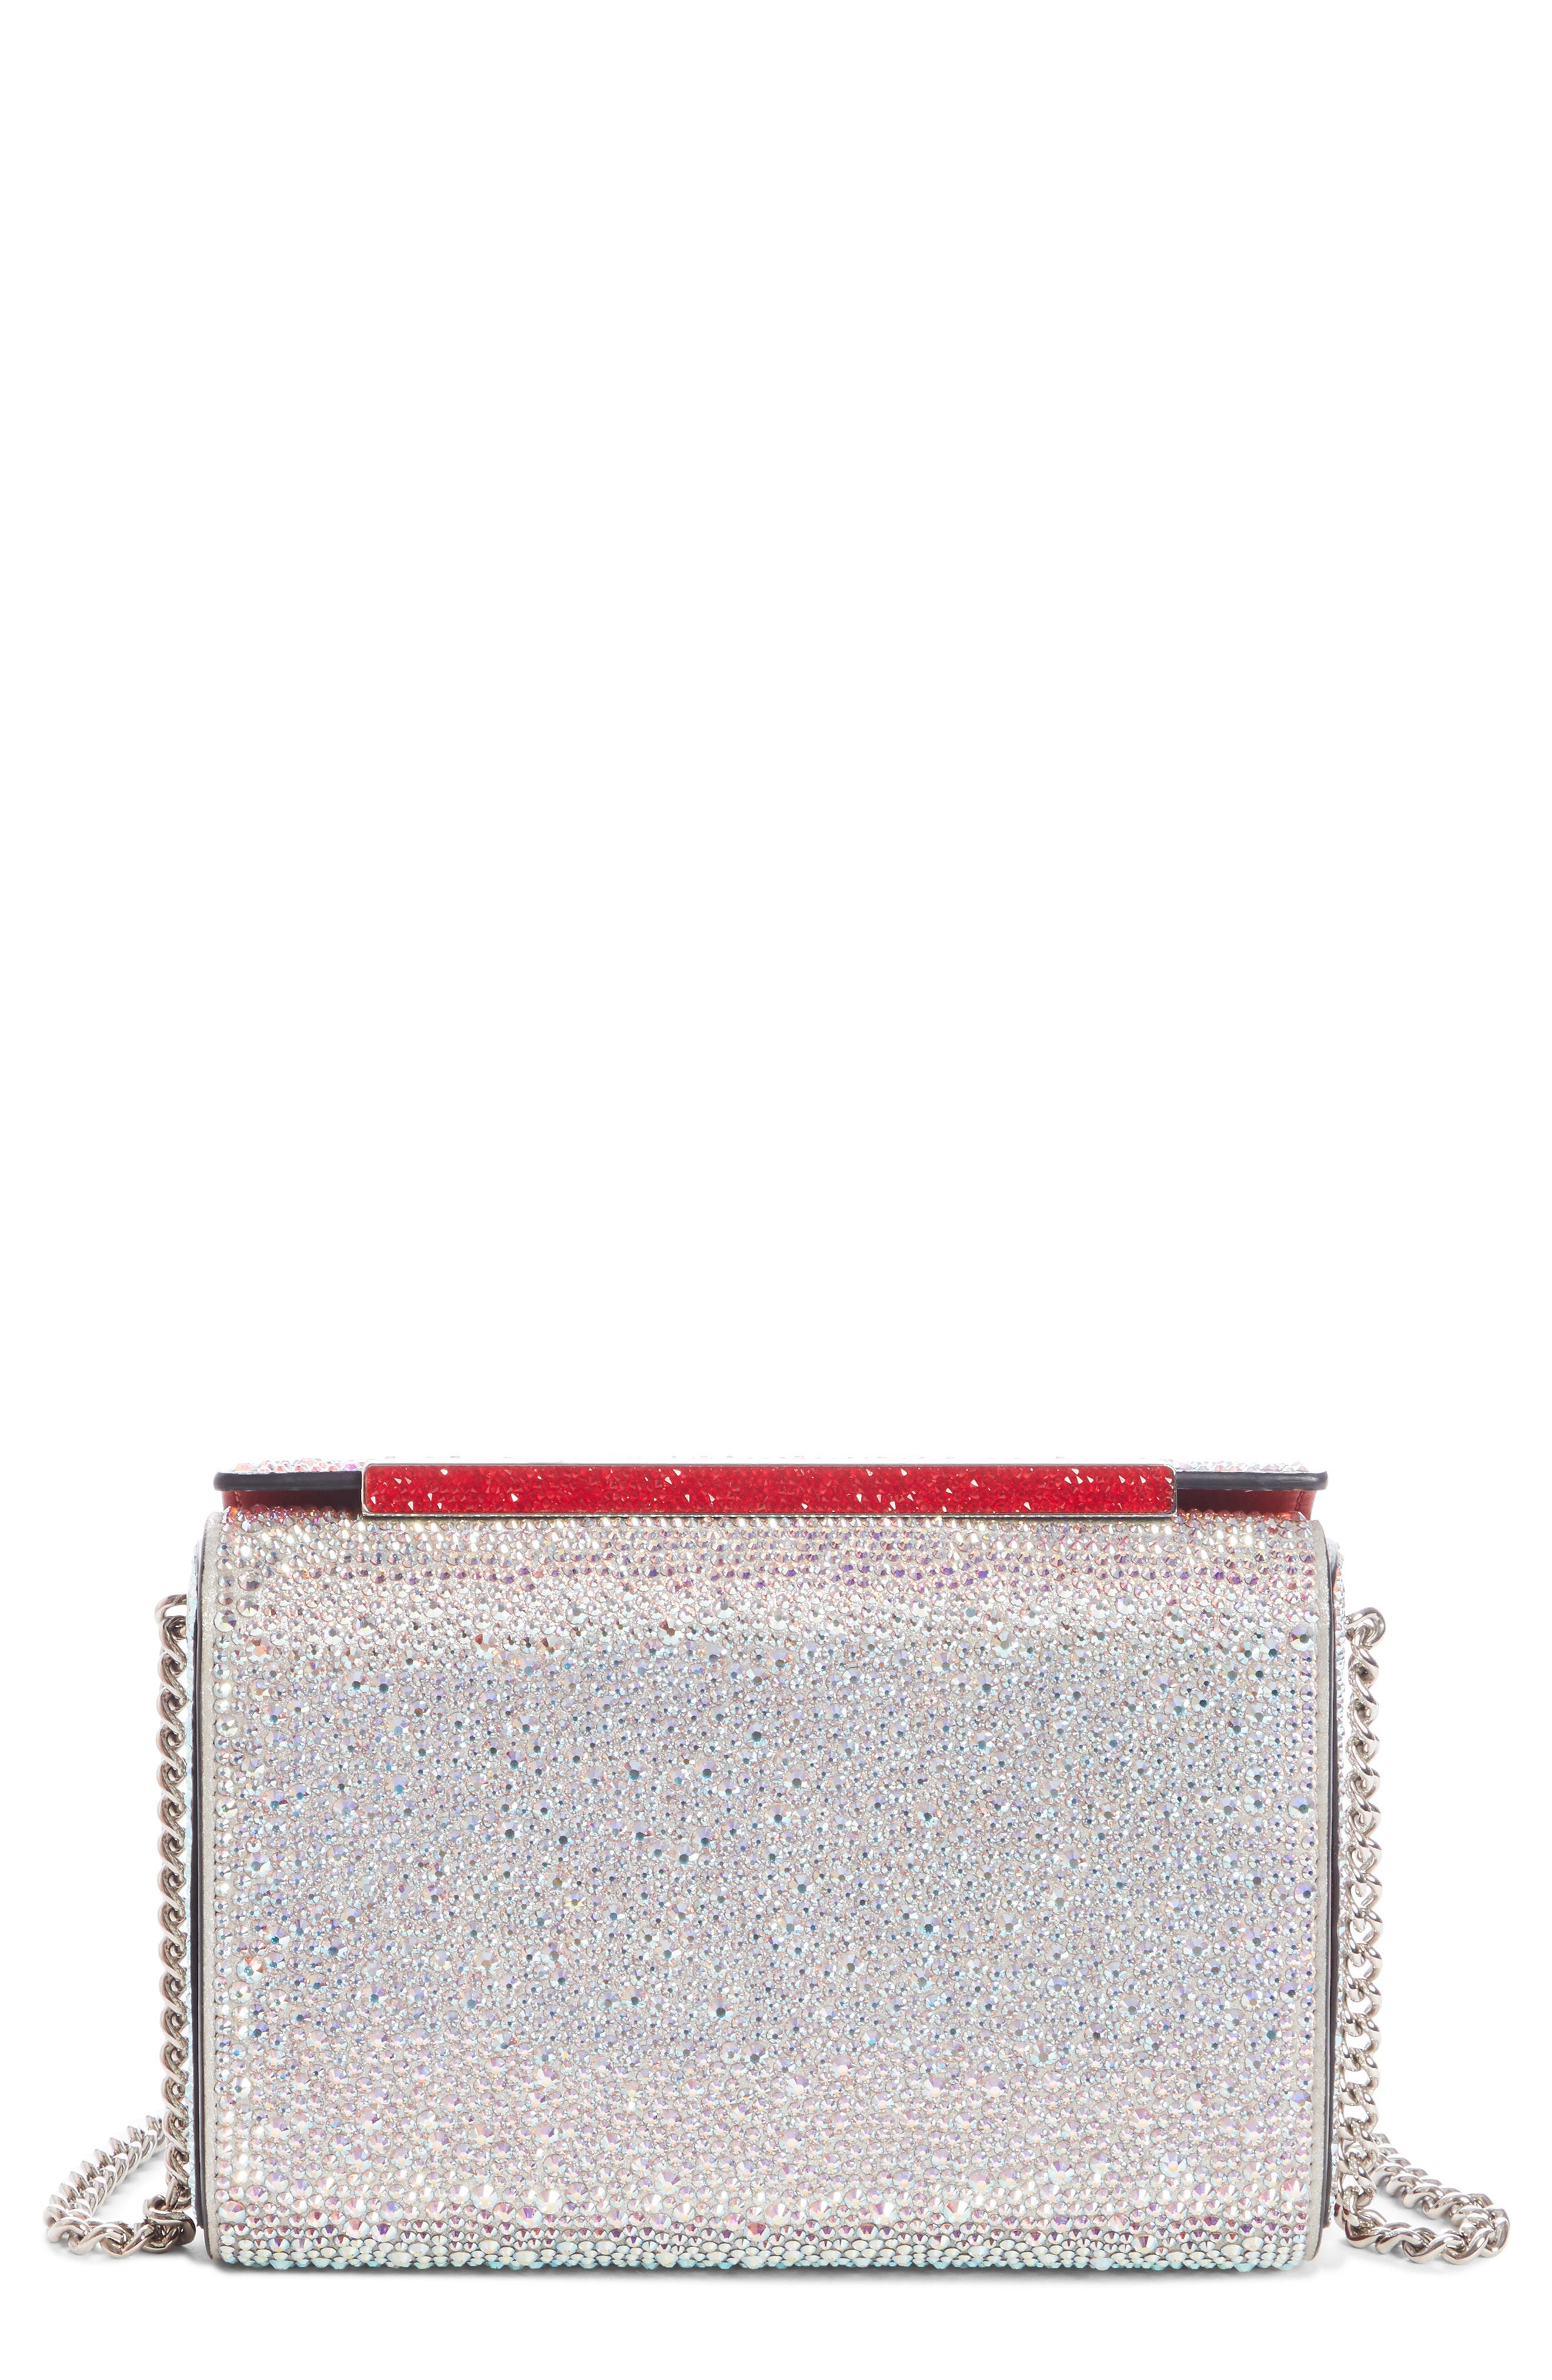 CHRISTIAN LOUBOUTIN, Large Vanite Crystal Embellished Clutch, Main thumbnail 1, color, 045